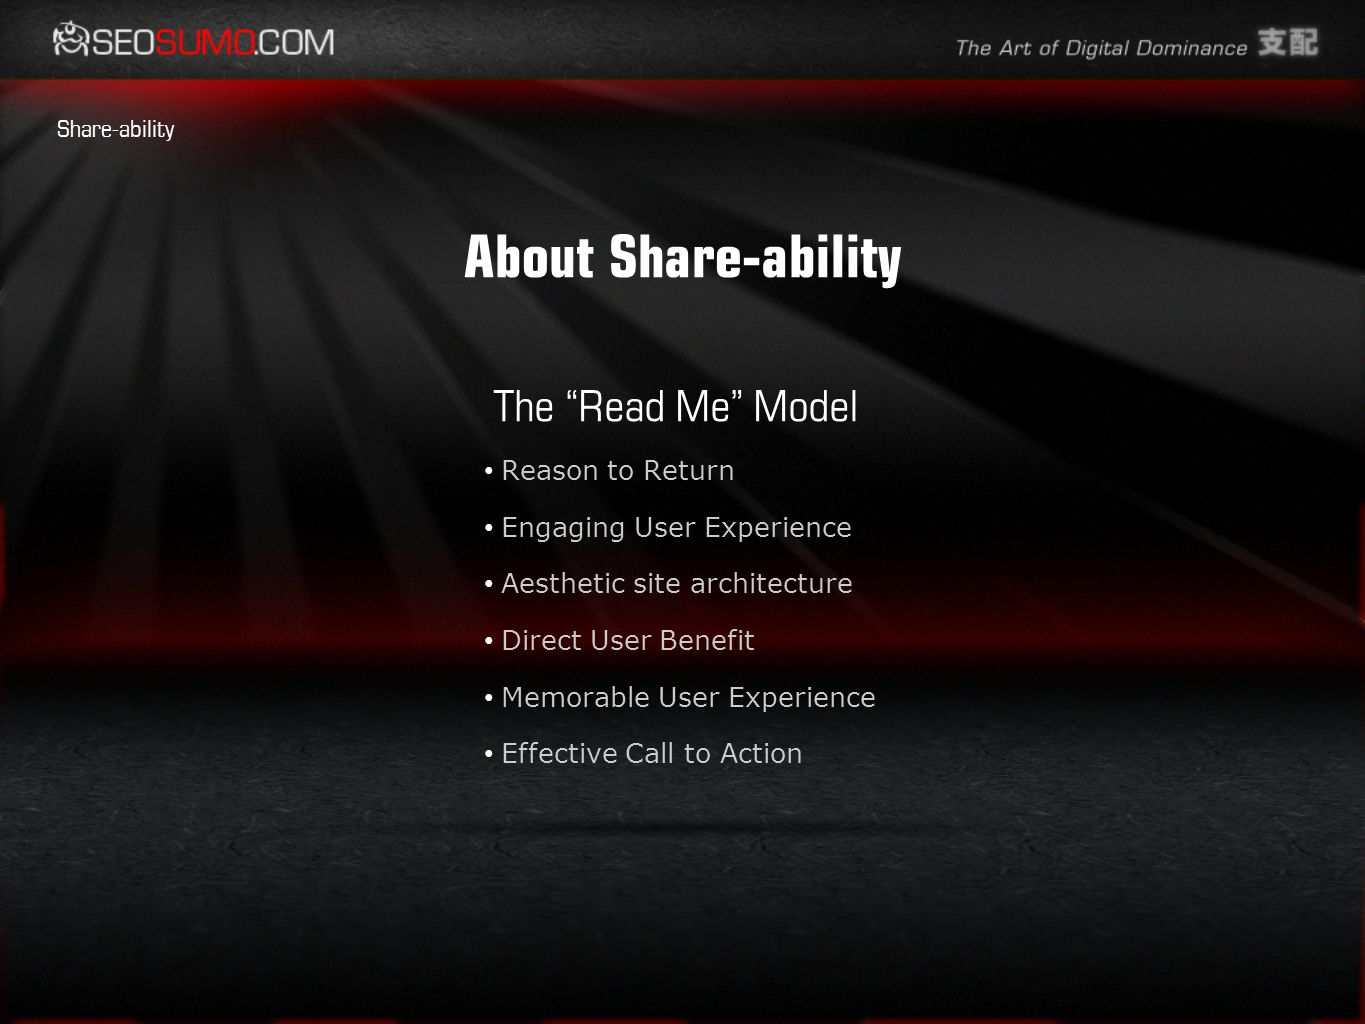 About Share-ability The Read Me Model Reason to Return Engaging User Experience Aesthetic site architecture Direct User Benefit Memorable User Experience Effective Call to Action Share-ability